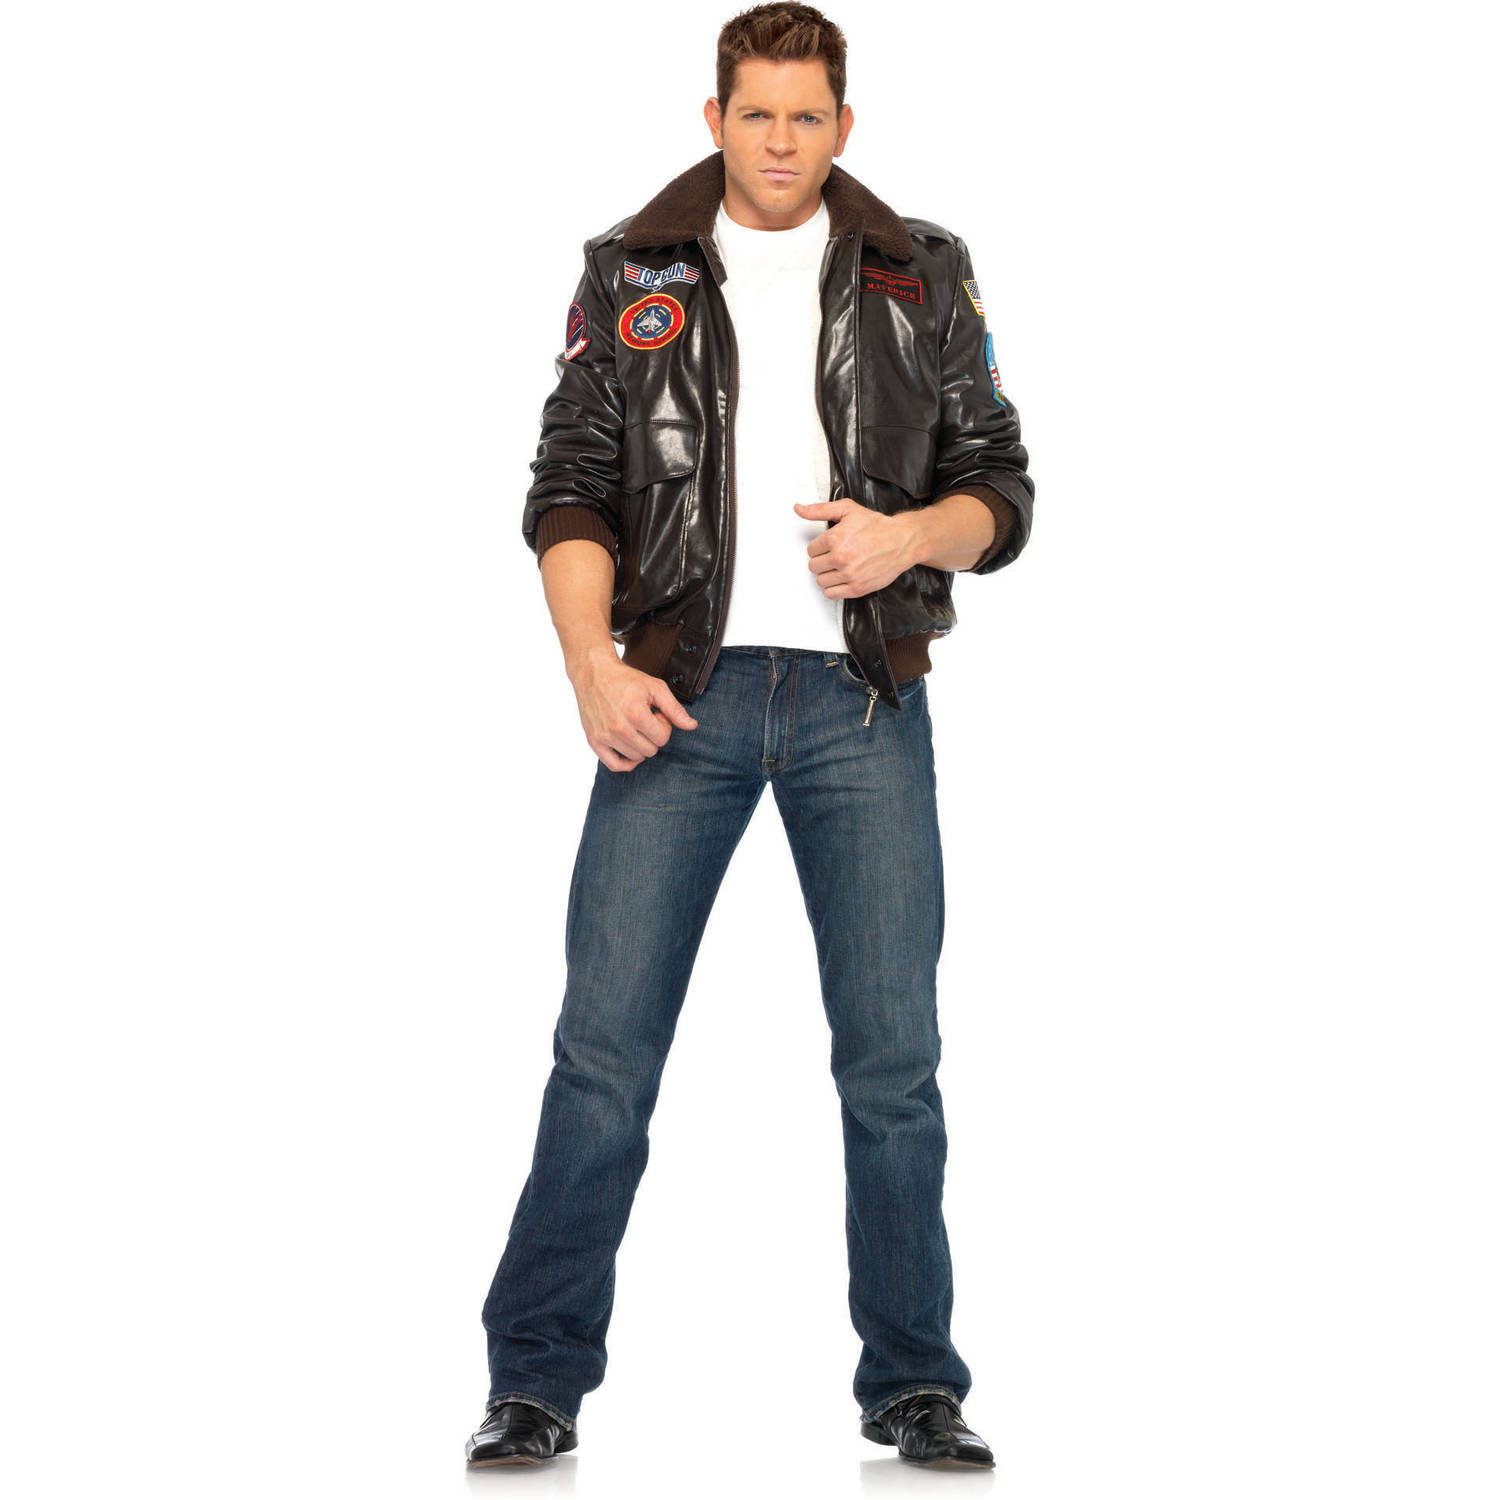 Leg Avenue Top Gun Adult&39s Bomber Jacket Adult Halloween Costume